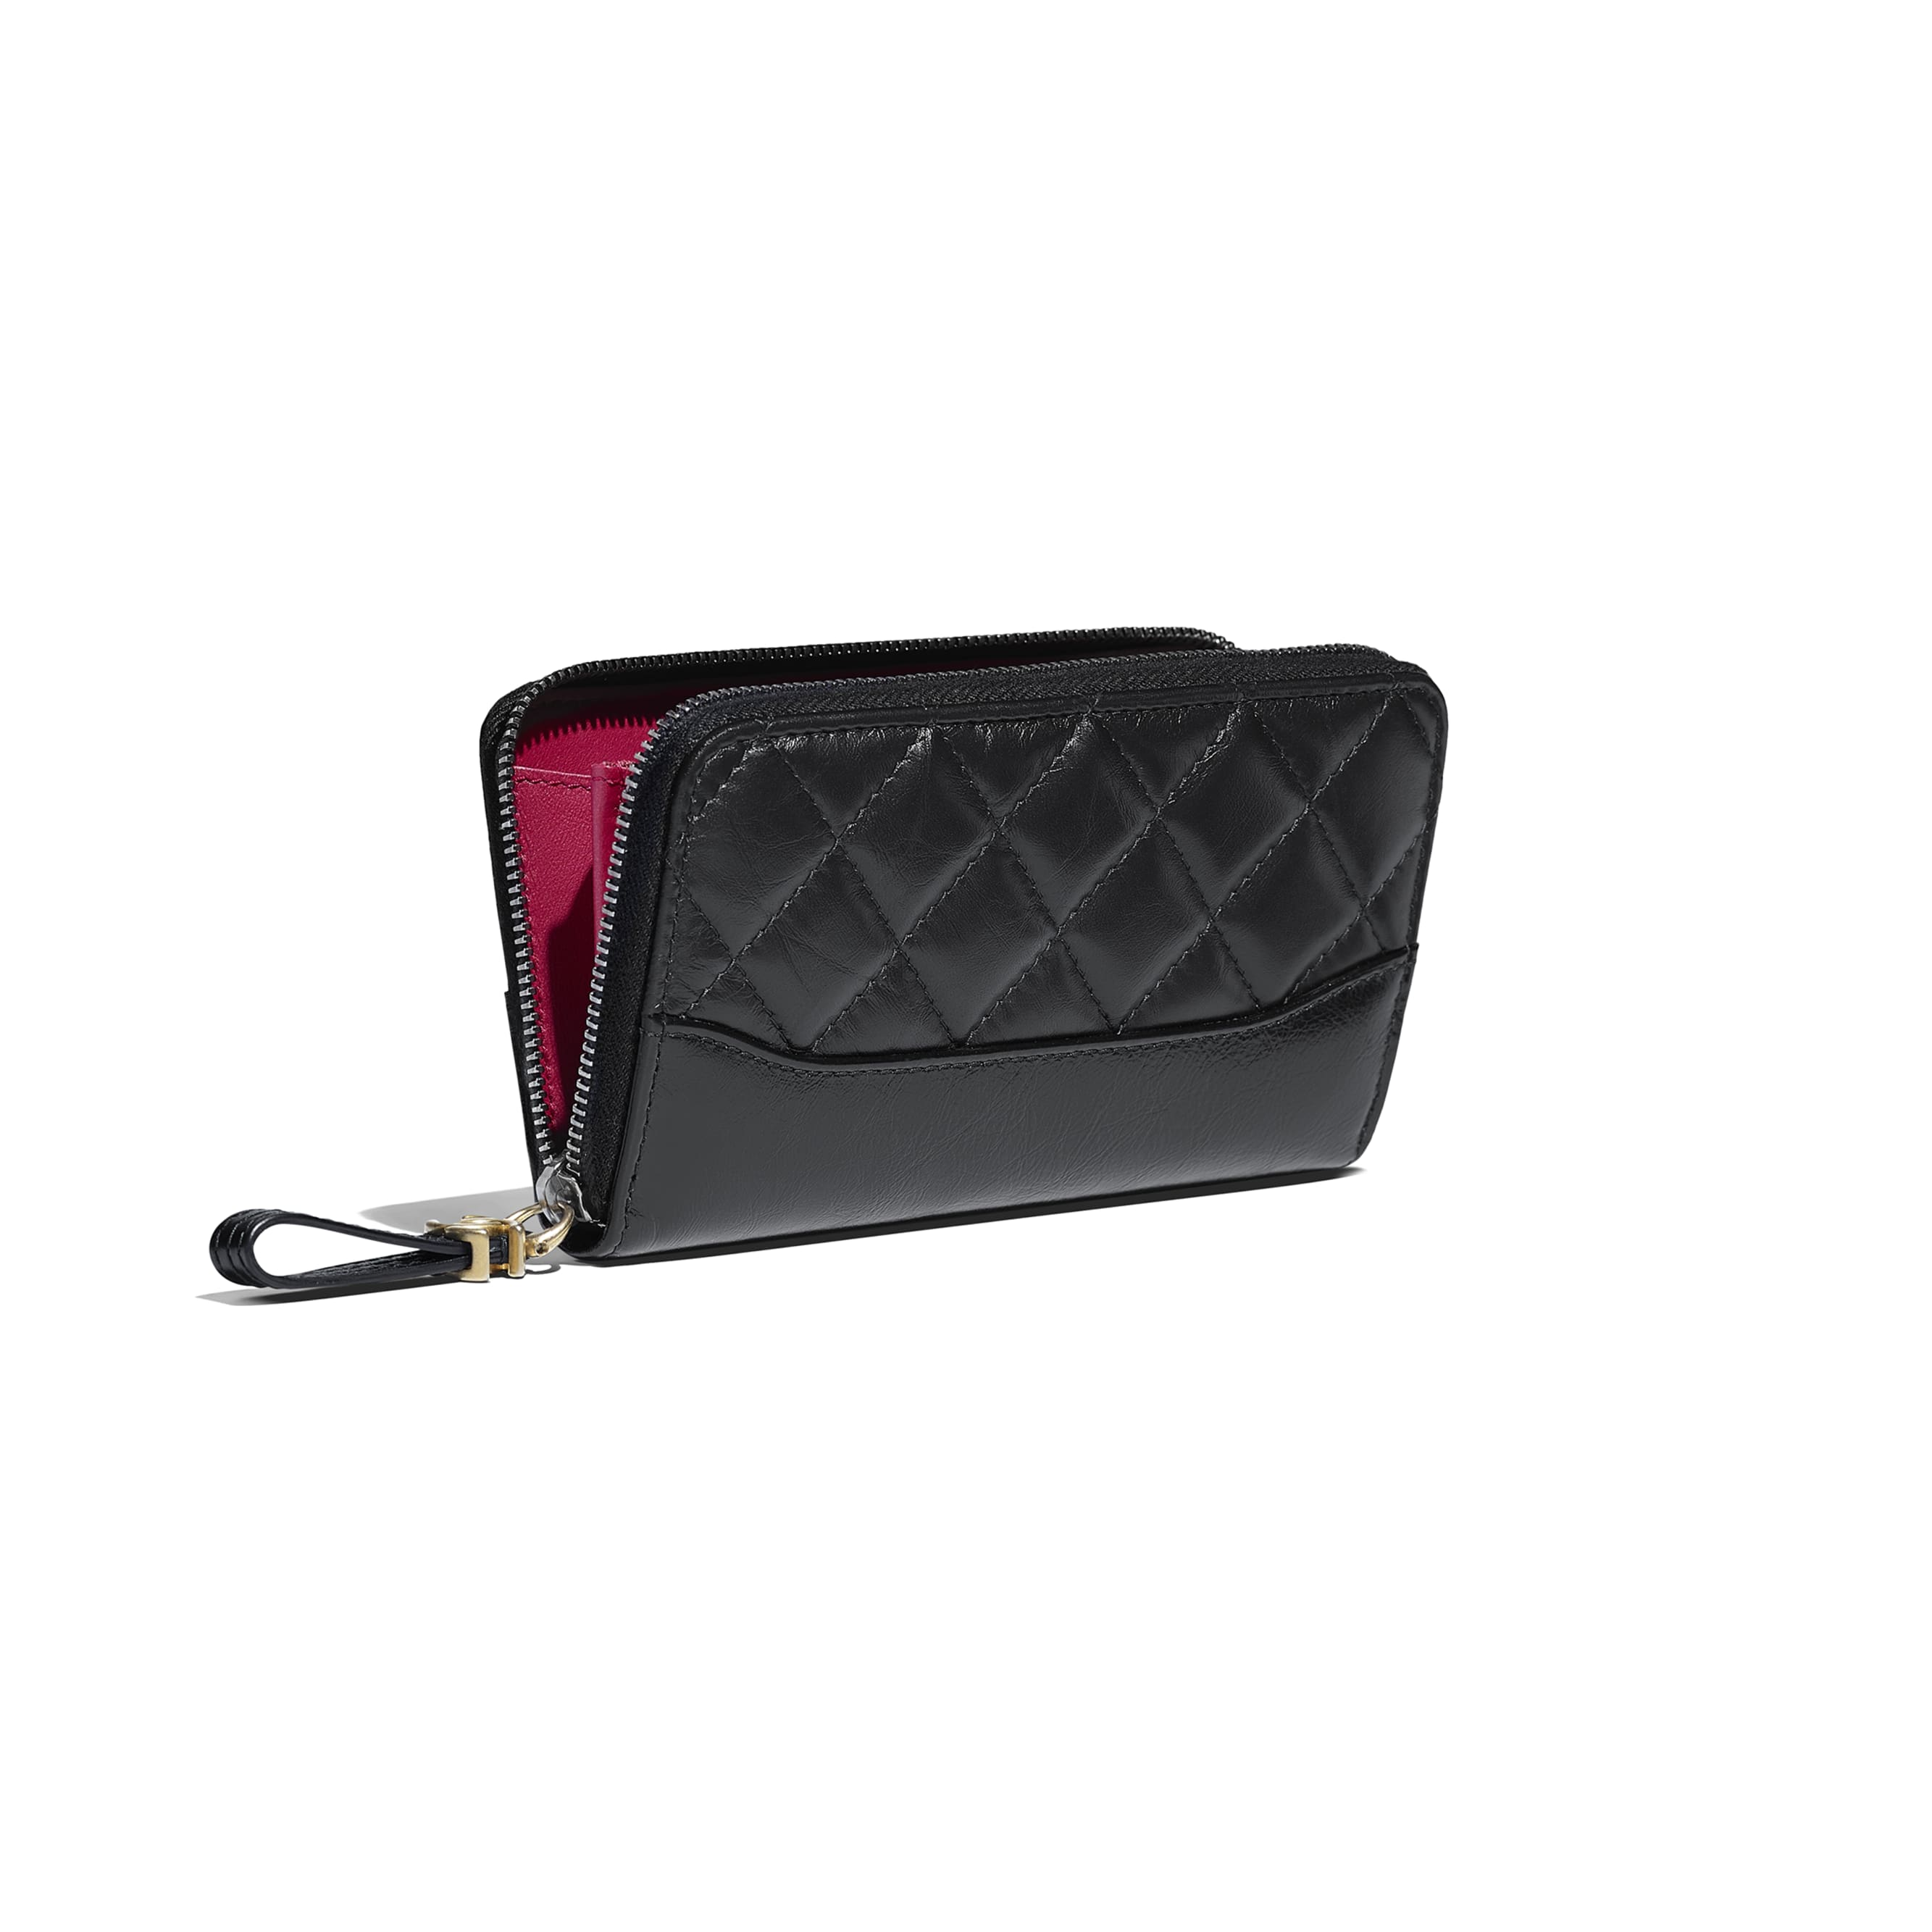 Zip Wallet - Black - Aged Calfskin, Smooth Calfskin, Silver-Tone & Gold-Tone Metal - Other view - see standard sized version